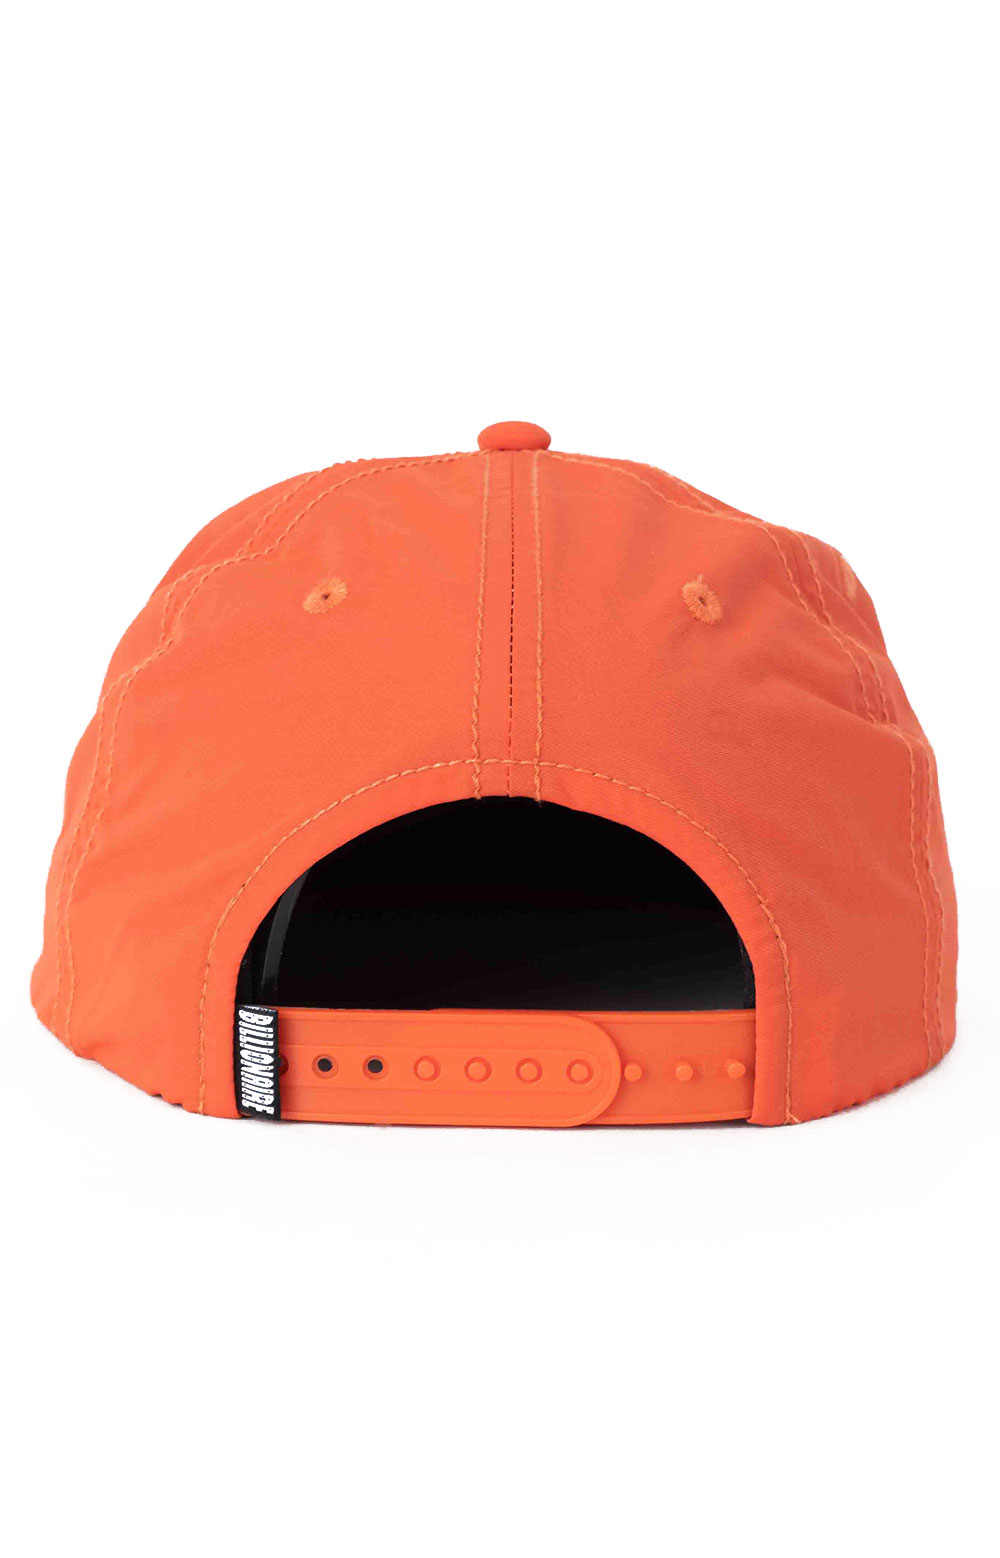 Clubhouse Snap-Back Hat - Hot Coral  3